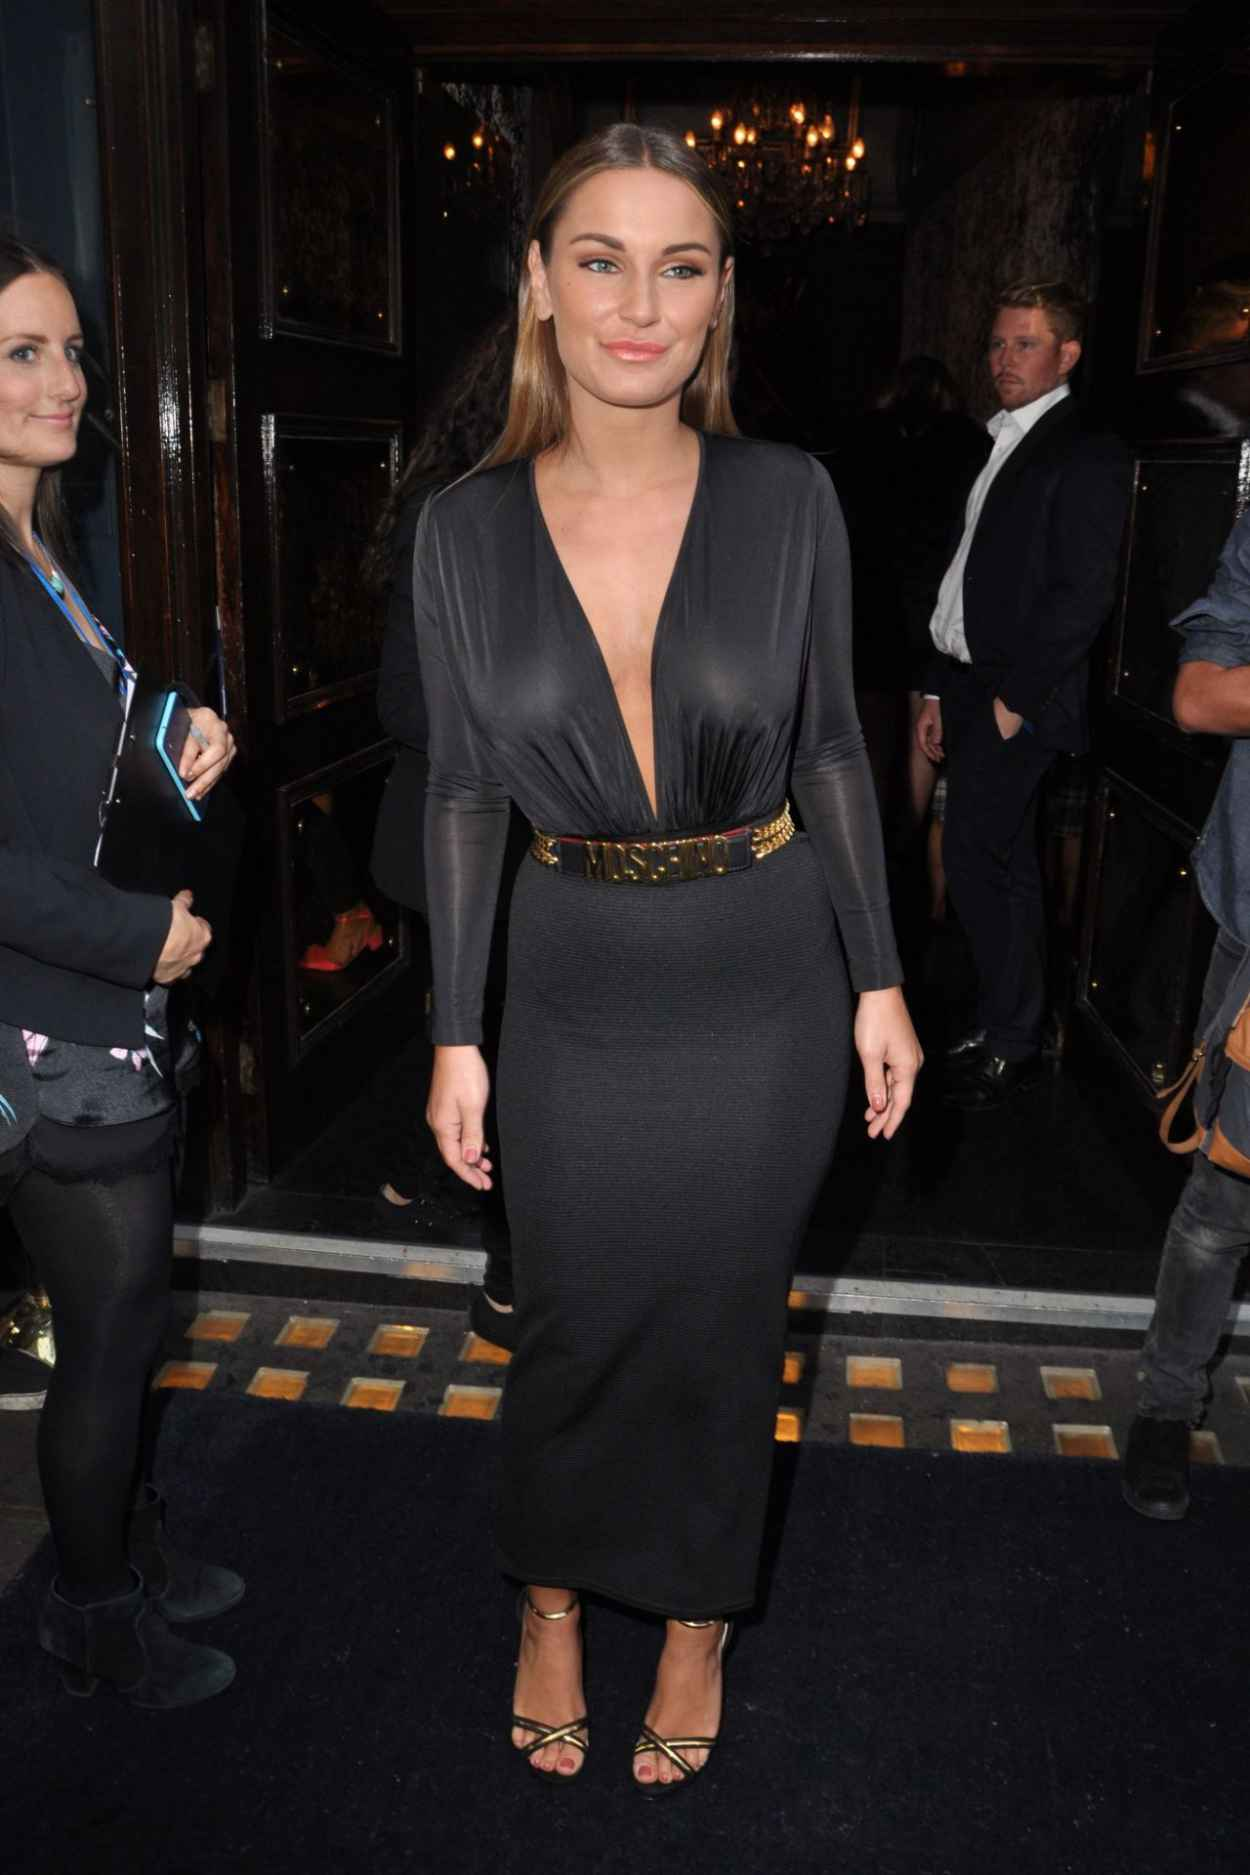 Sam Faiers at RuPauls Drag Race in London, june 2015-3